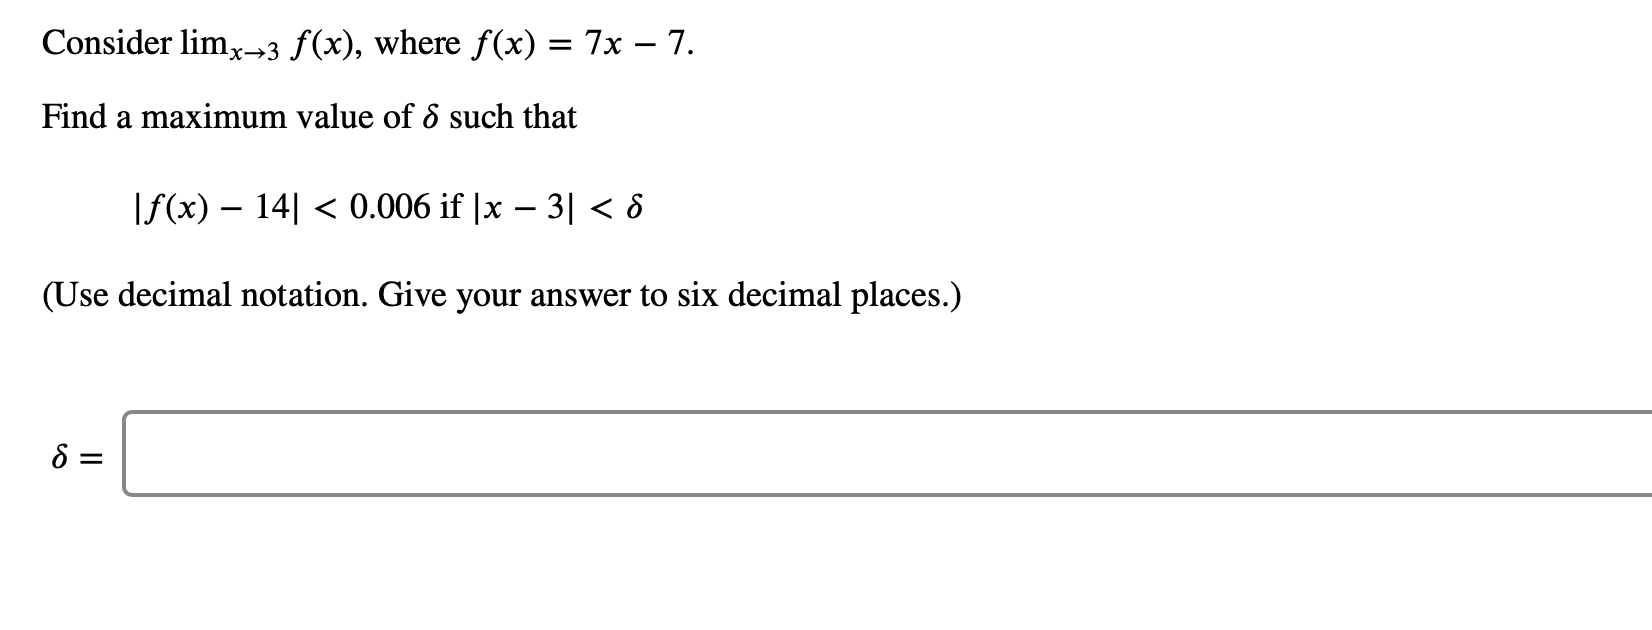 Consider limx3 f(x), where f (x) = 7x - 7. Find a maximum value of 6 such that f(x) 140.006 if  x - 3 < 8 (Use decimal notation. Give your answer to six decimal places.)